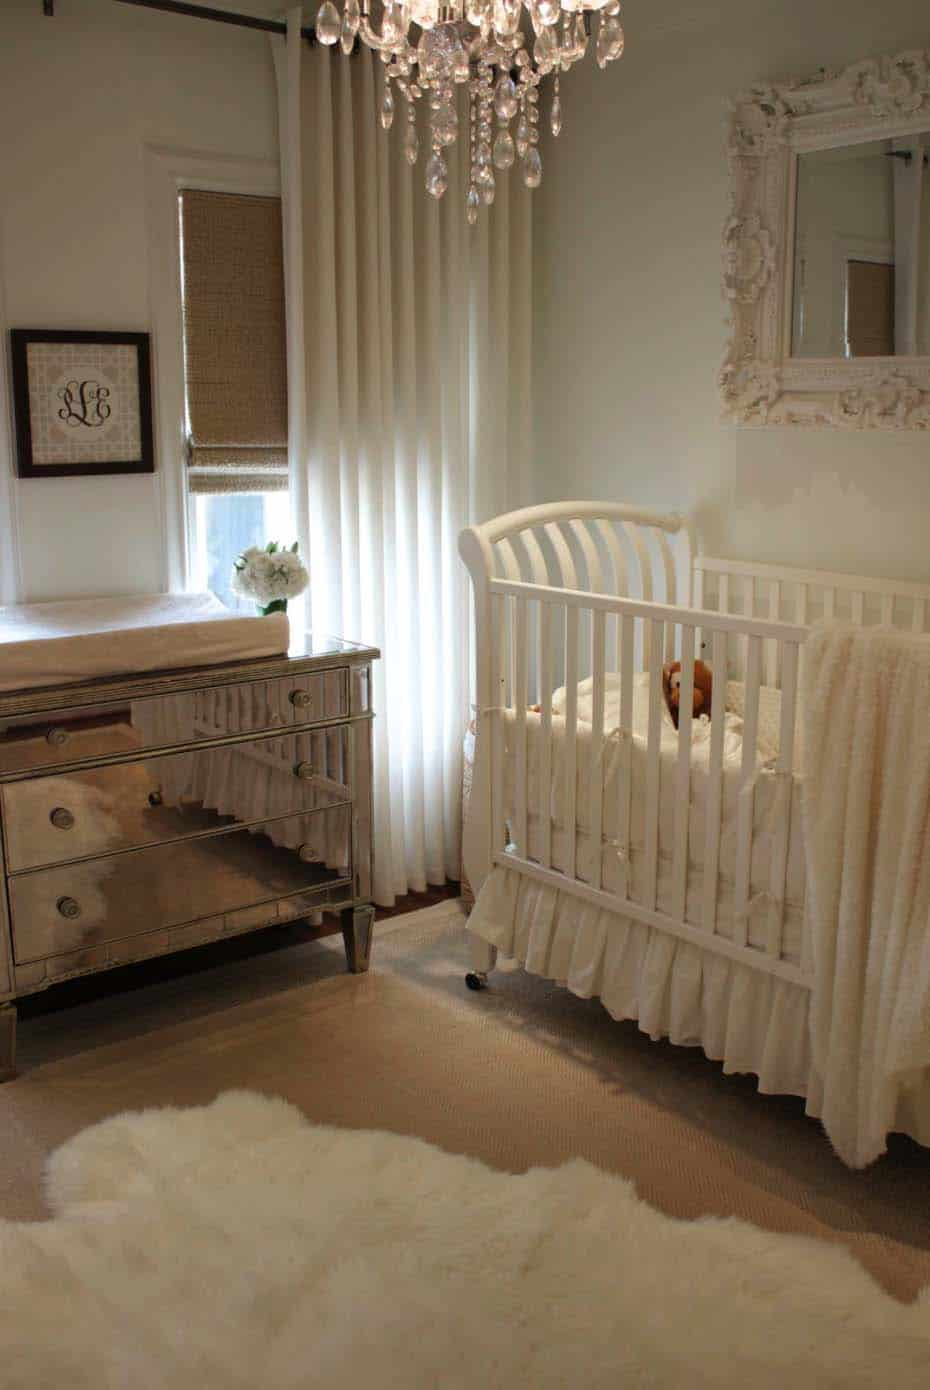 Stylish Nursery Decorating Ideas-17-1 Kindesign